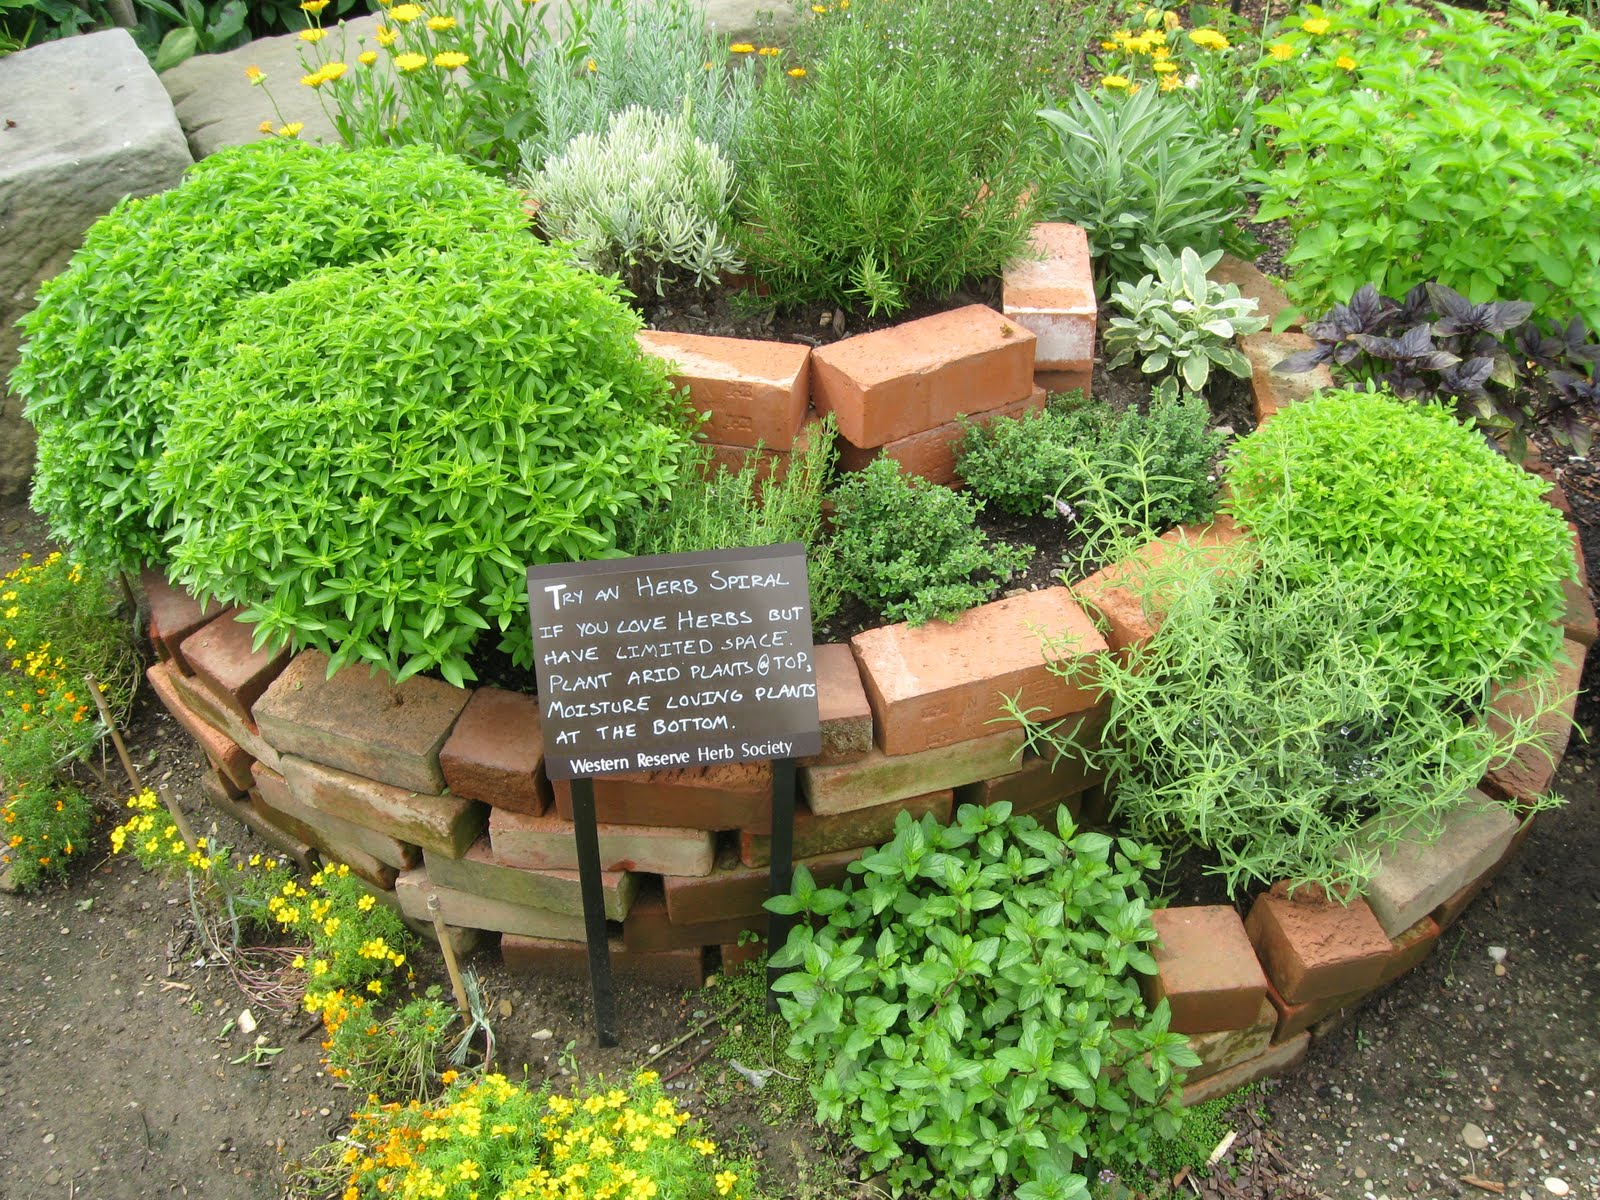 Herb garden design ideas | Hawk Haven on home space, garage space, living room space, community pool, community work space, art gallery space, cricut design space, community diy space, community park space,